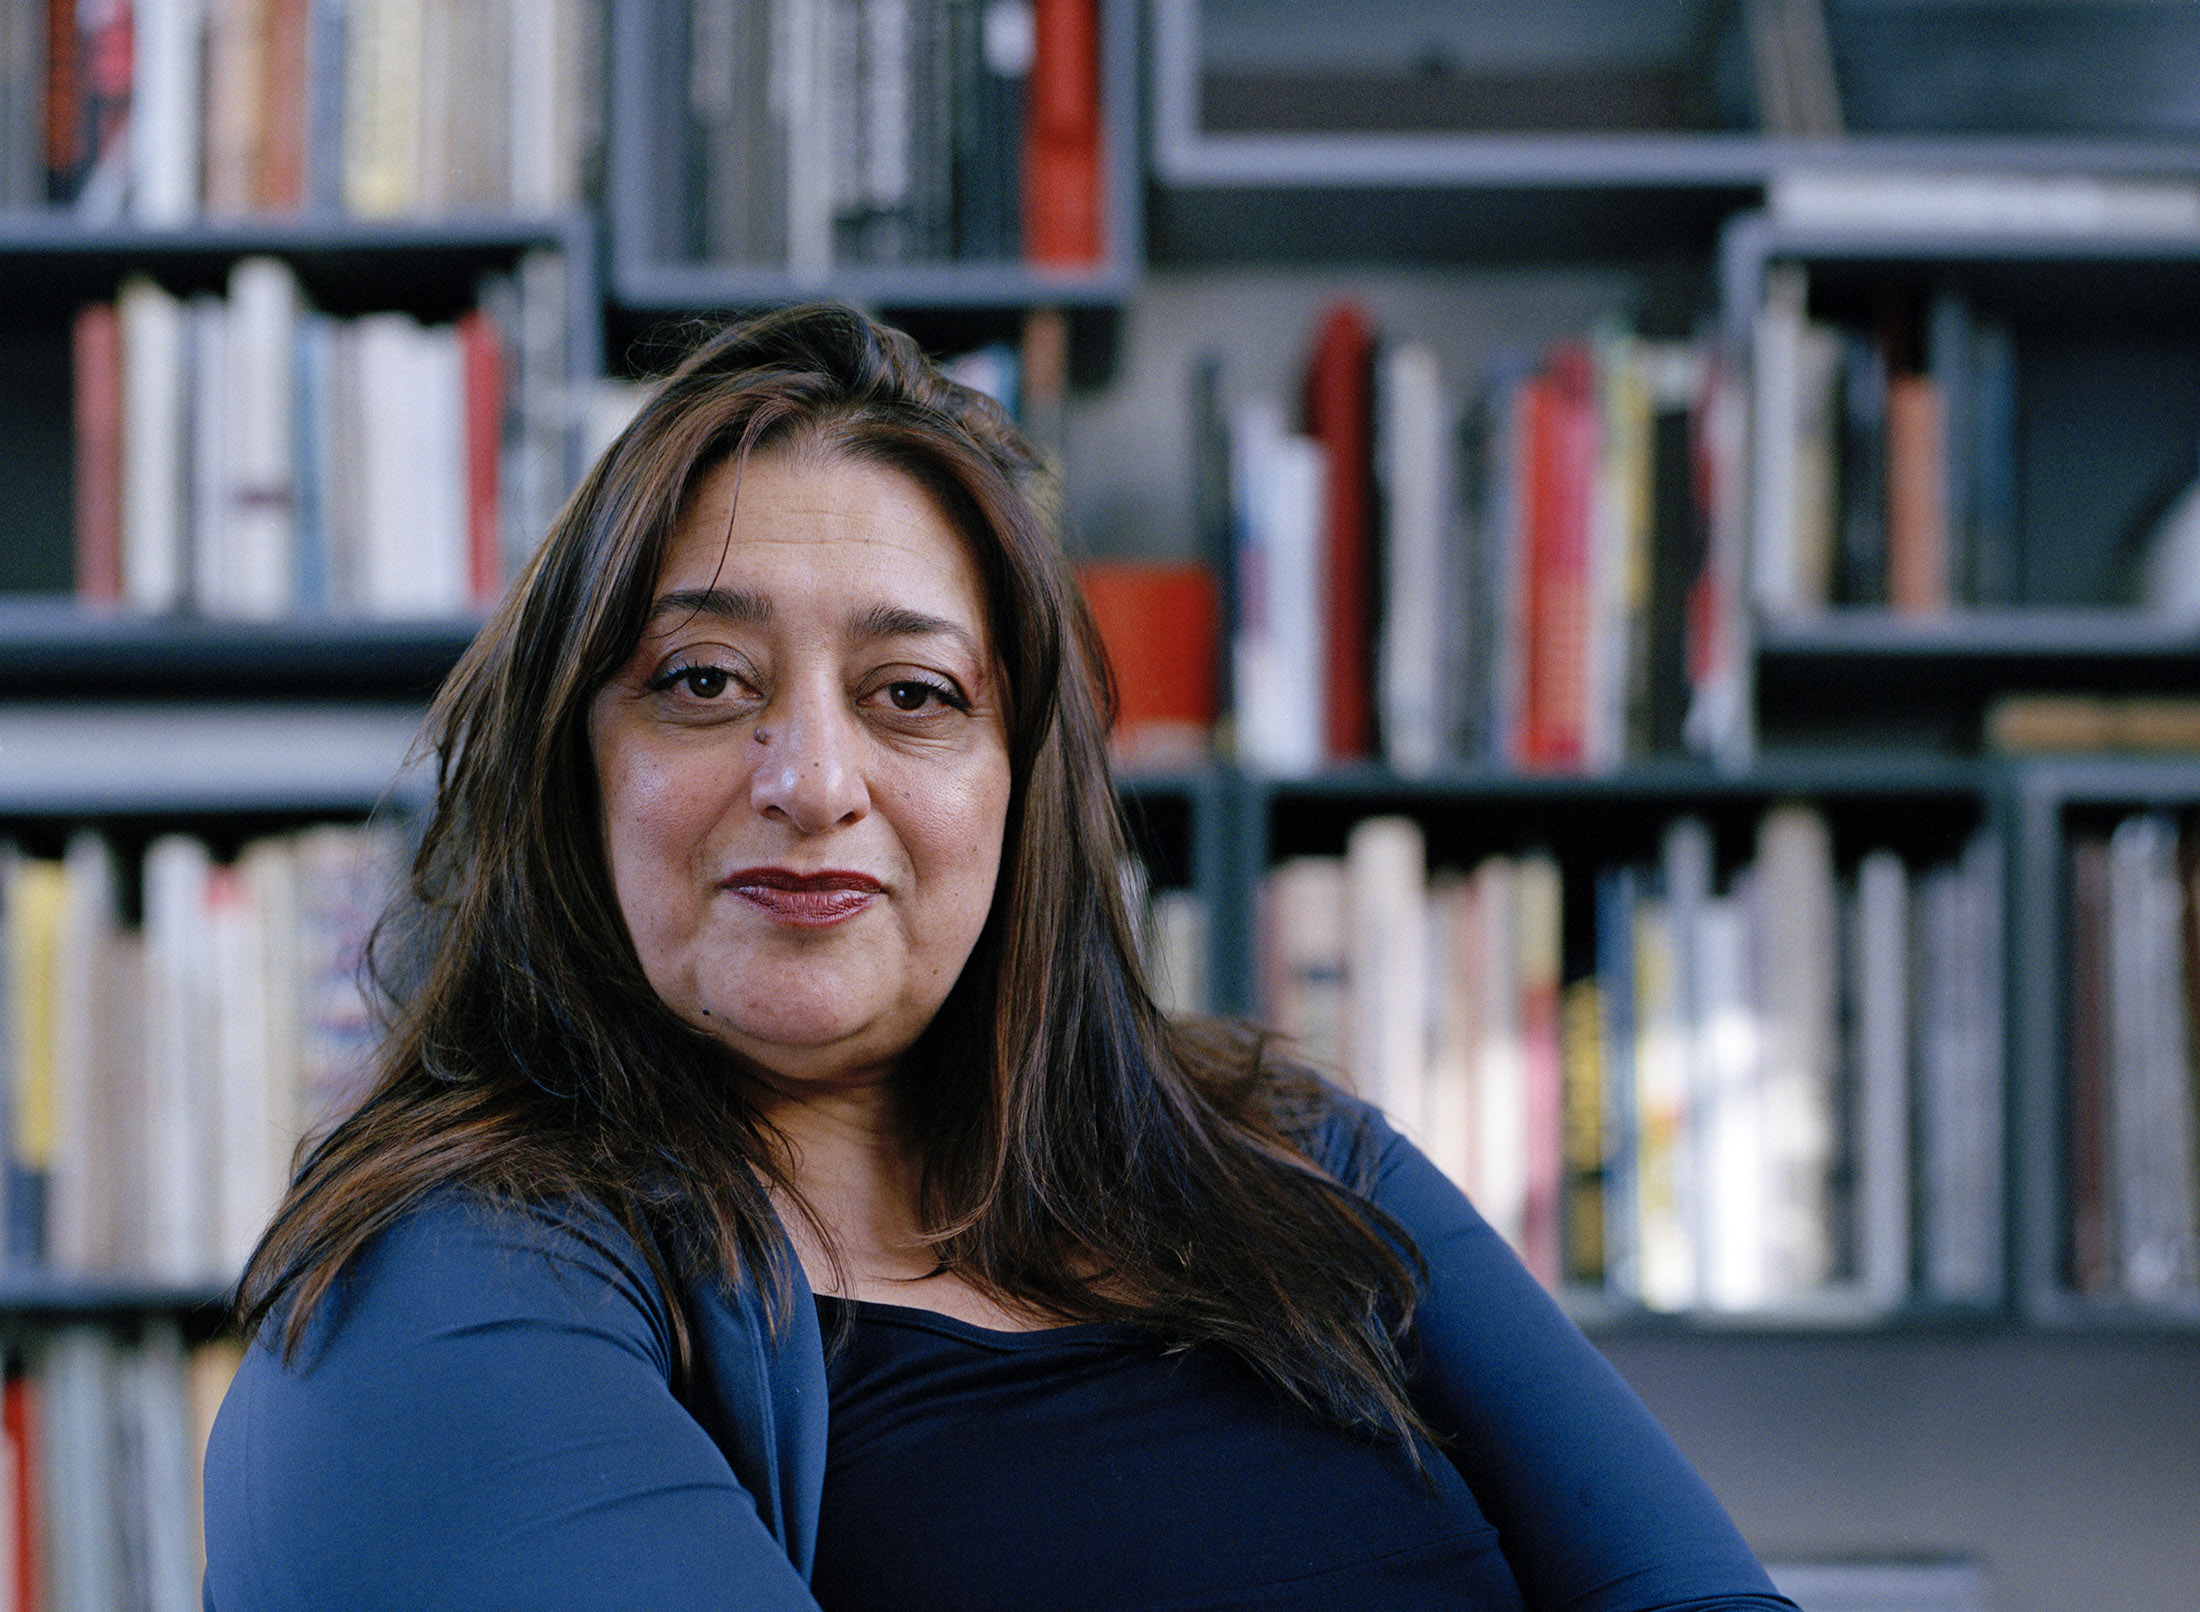 zaha hadid an architect inspired by nature cultural studies essay Zaha hadid: breaking stereotypes through architecture zaha hadid did  she began her studies in architecture at the  zaha hadid architects is .